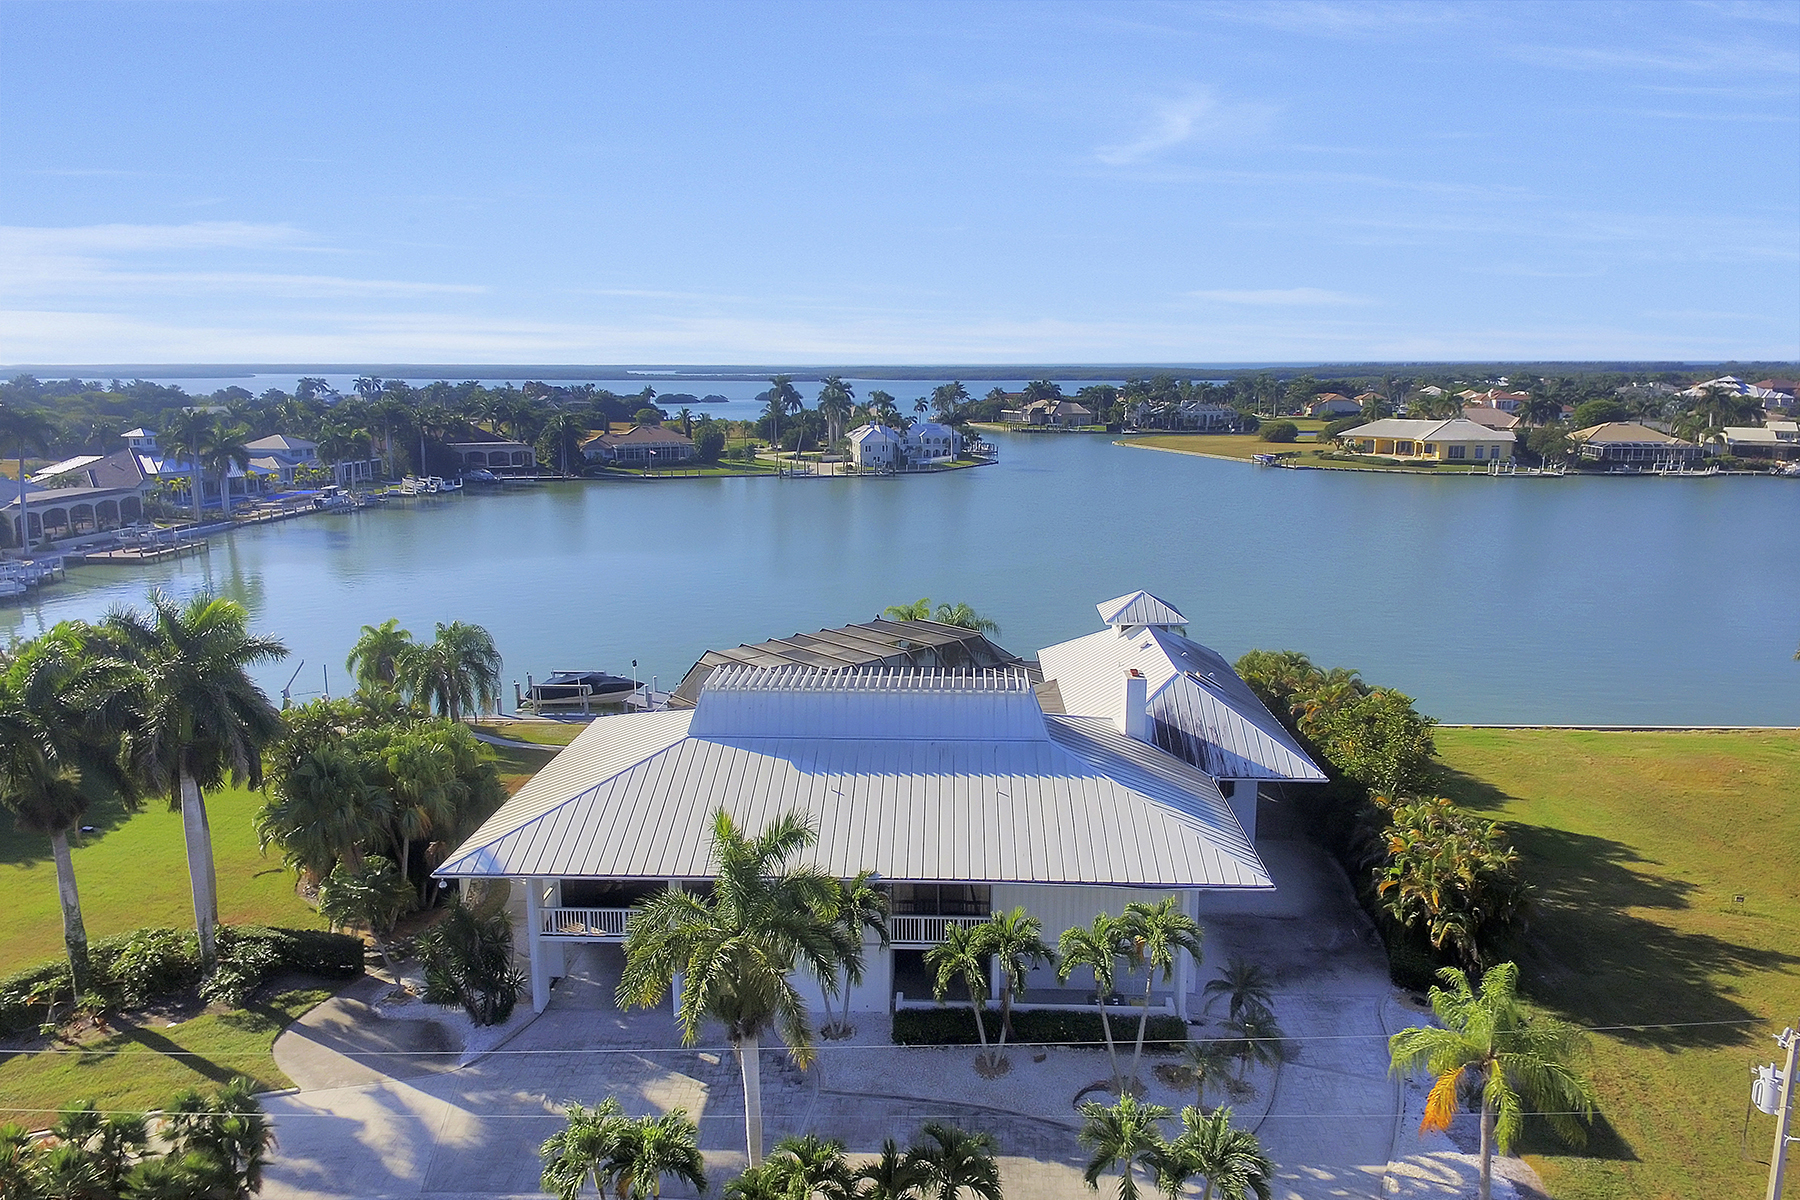 Single Family Home for Sale at MARCO ISLAND - LUDLOW RD 1751 Ludlow Rd, Marco Island, Florida 34145 United States